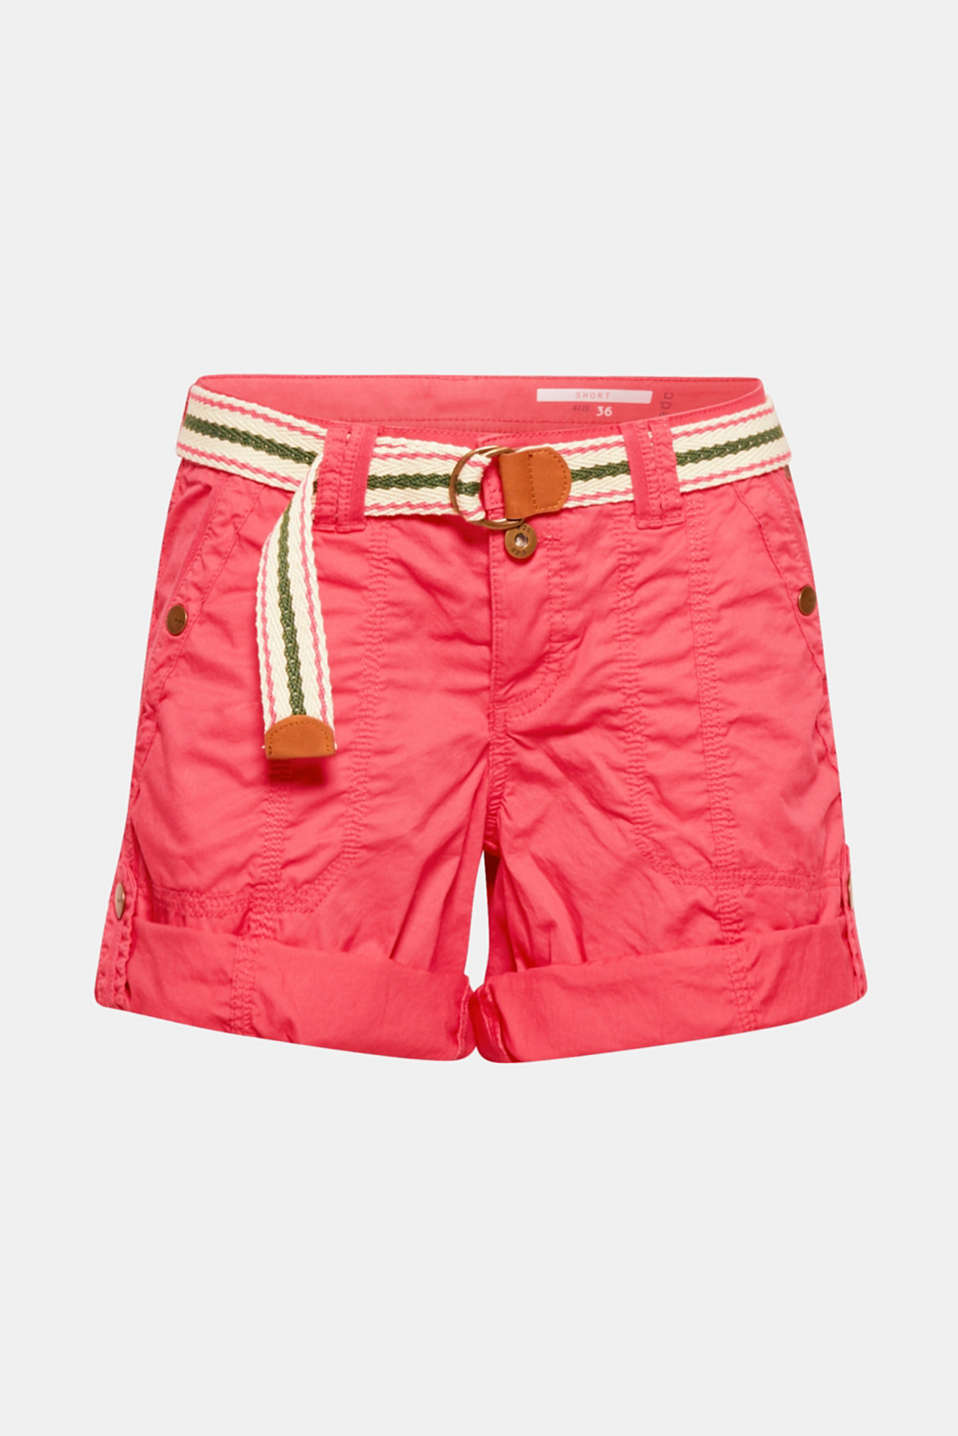 PLAY shorts with a belt, 100% cotton, BERRY RED, detail image number 8